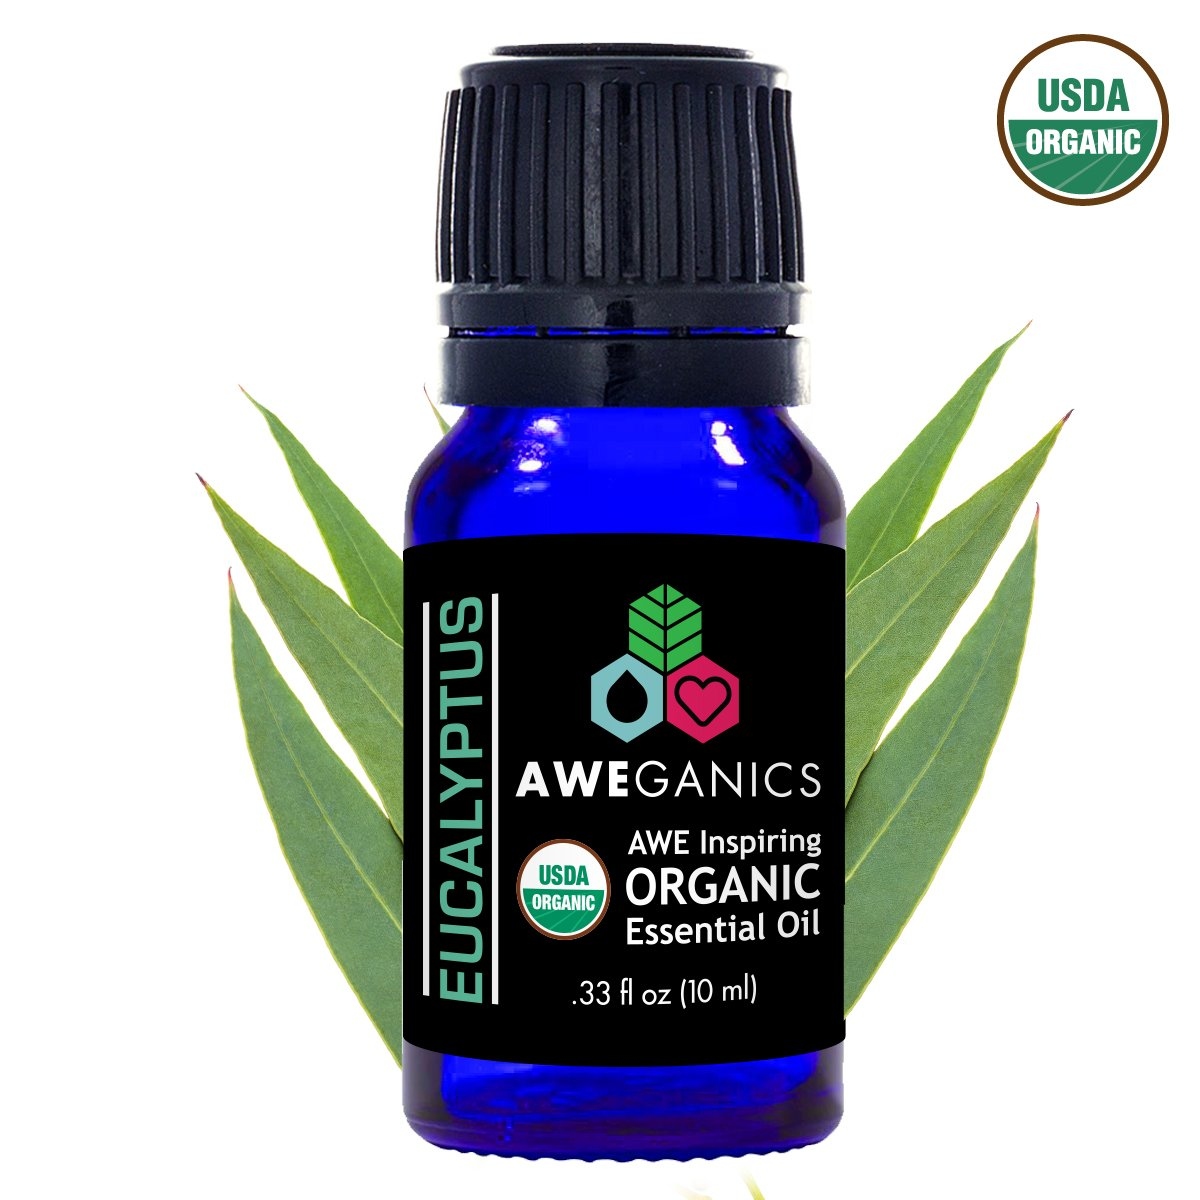 Aweganics Pure Eucalyptus Oil USDA Organic Essential Oils, 100% Pure Natural Premium Therapeutic-Grade, Best Aromatherapy Scented-Oils for Diffuser, Home, Office, Women, Men (10 ML) MSRP $14.99